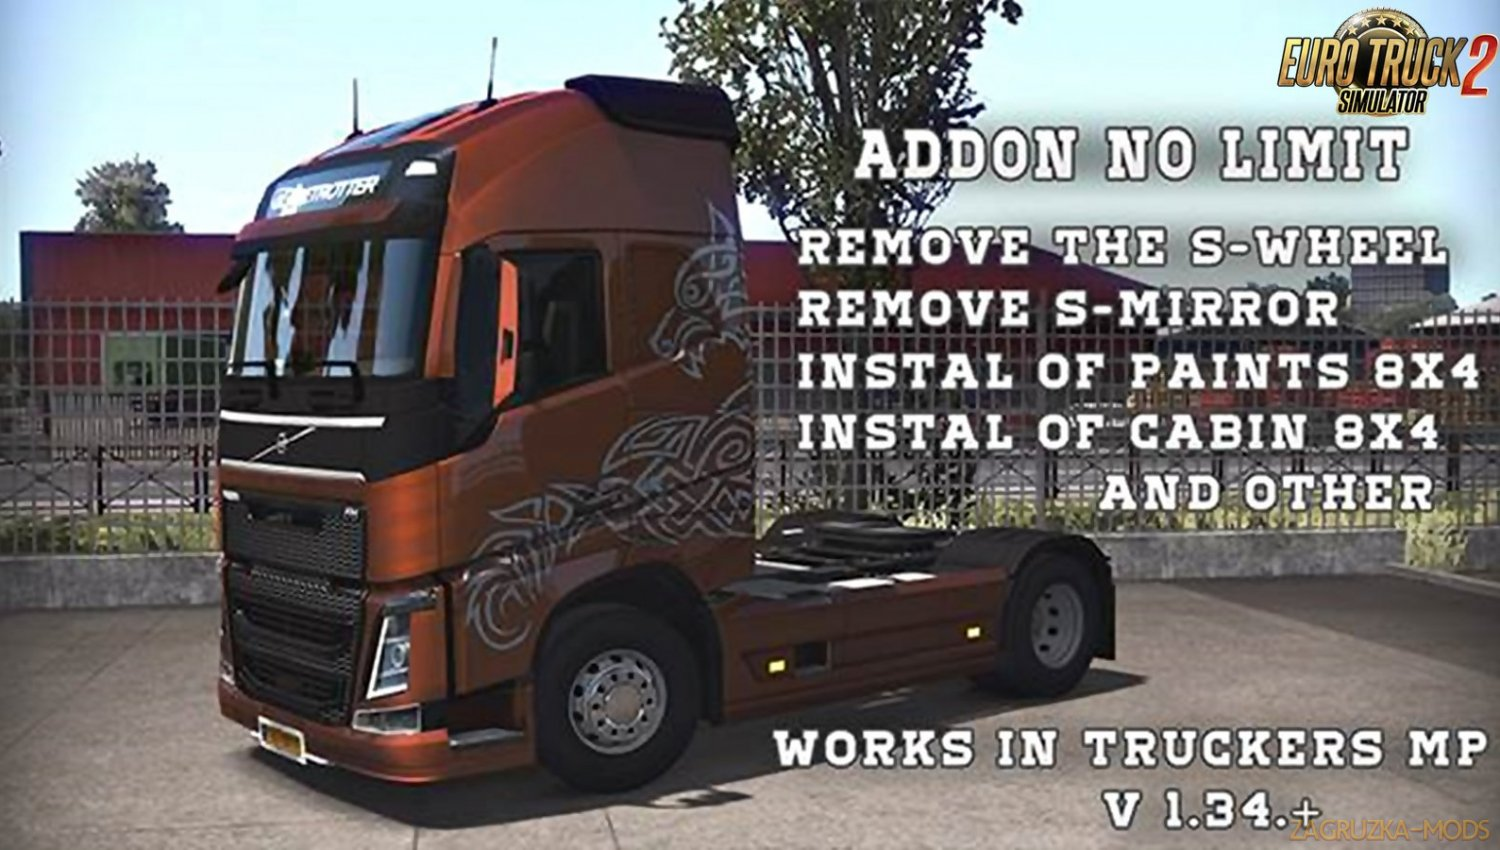 BC-Addon No Limit [Works at Truckers MP]